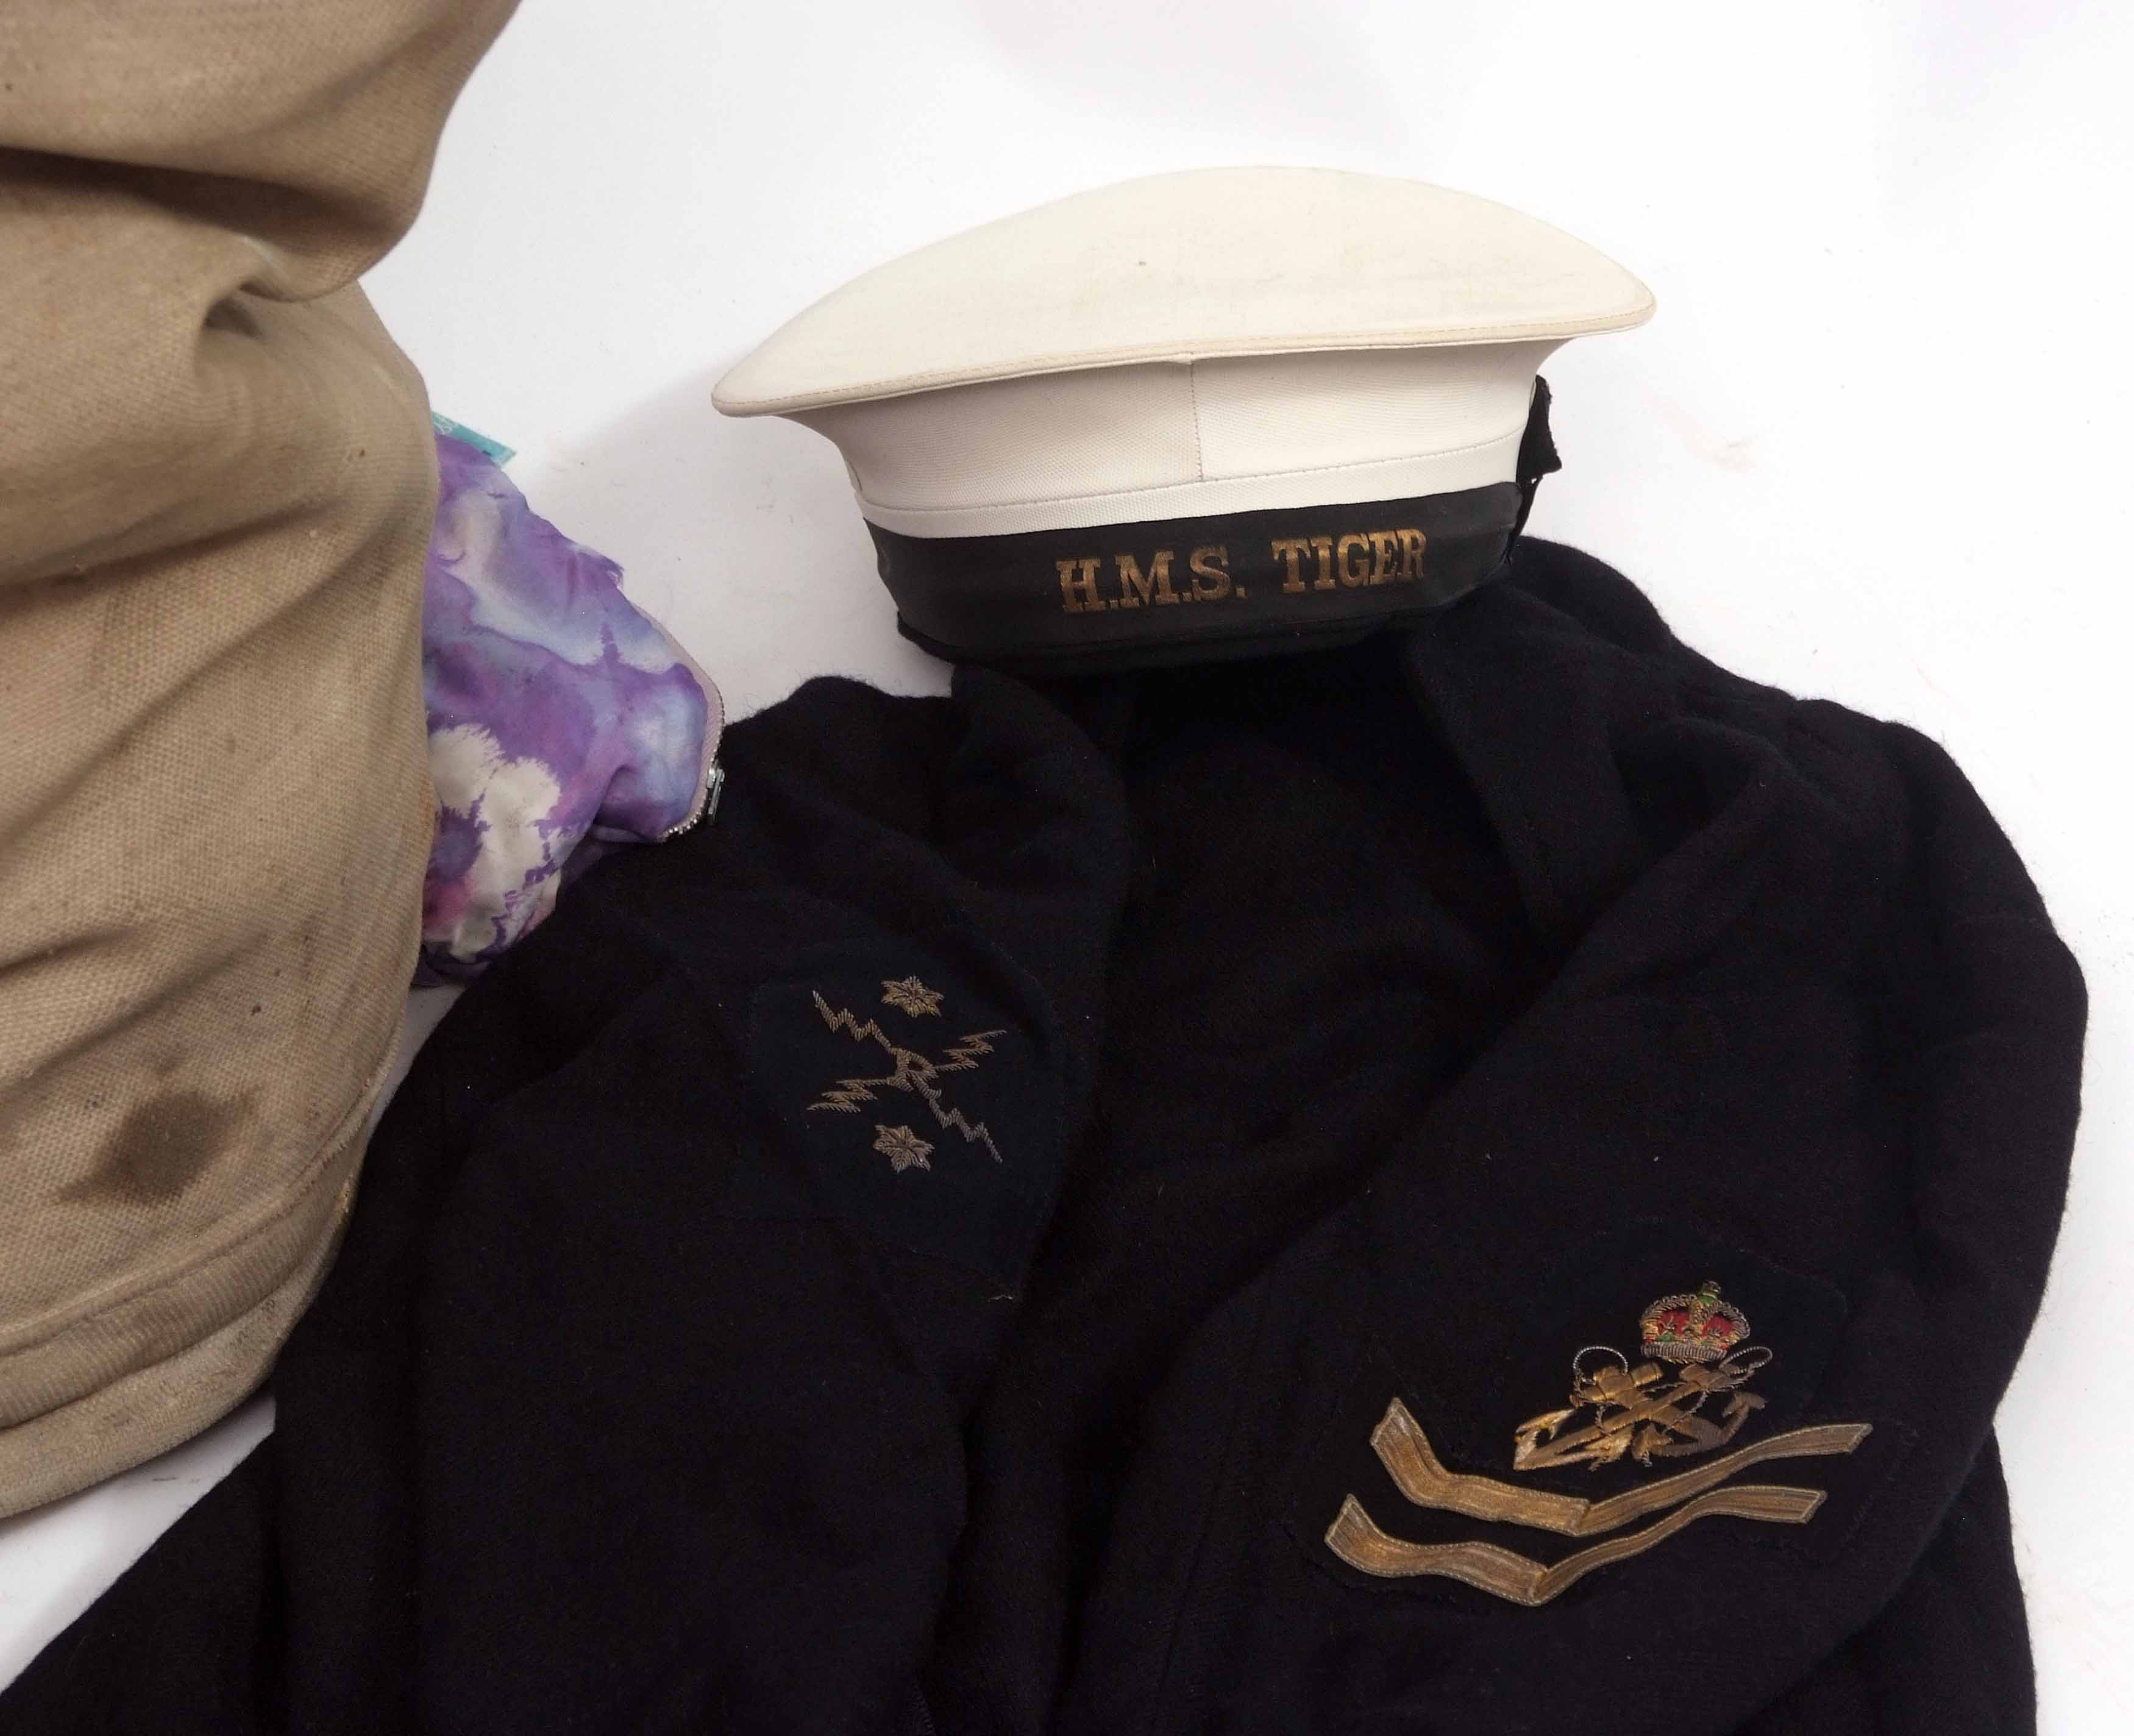 Lot 586 - Mid-20th century Royal Naval kitbag and contents comprising a white Naval cap with band to HMS Tiger